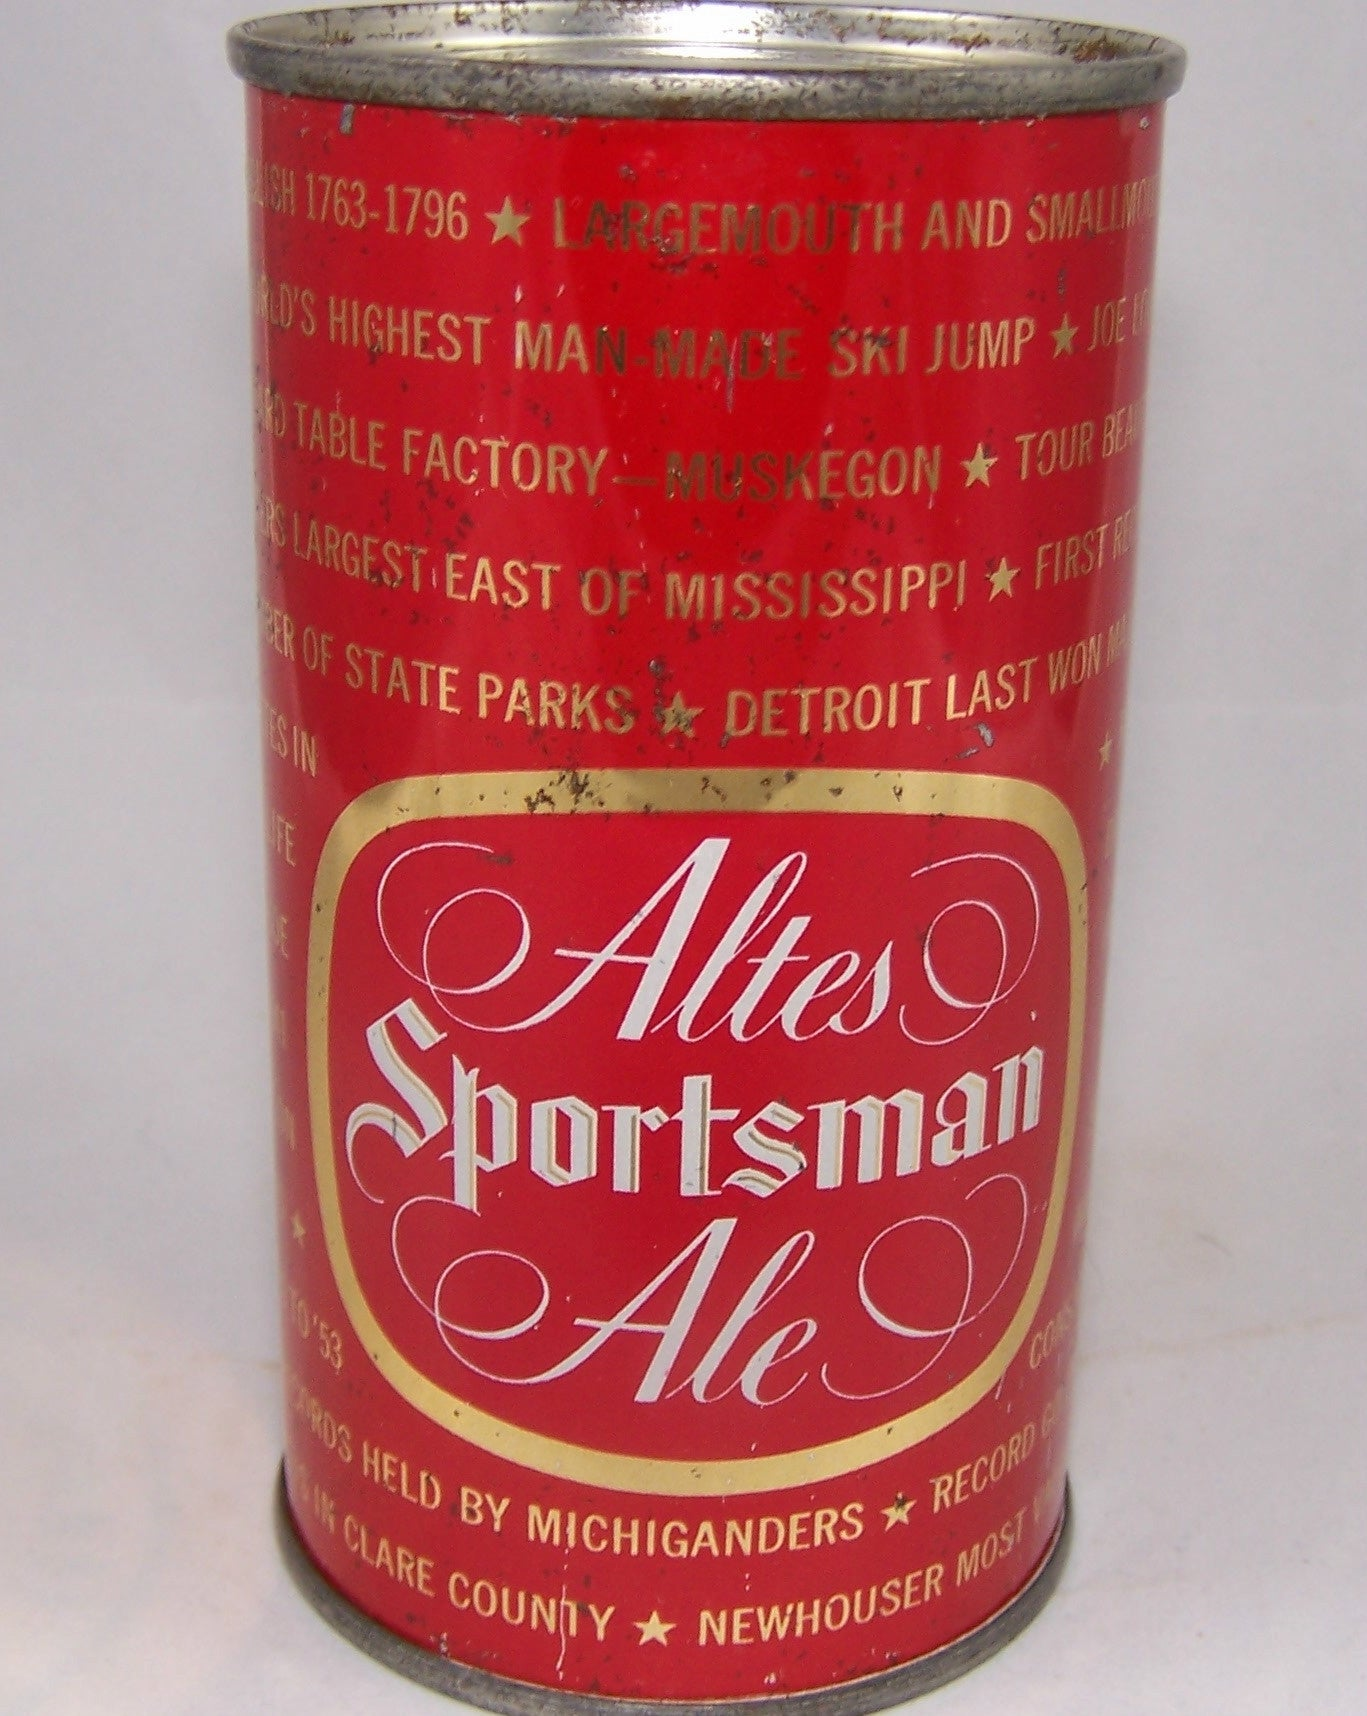 Altes Sportsman Ale (Michigan Ruled by English) USBC 30-27, Grade 1/1- Sold n 11/30/15